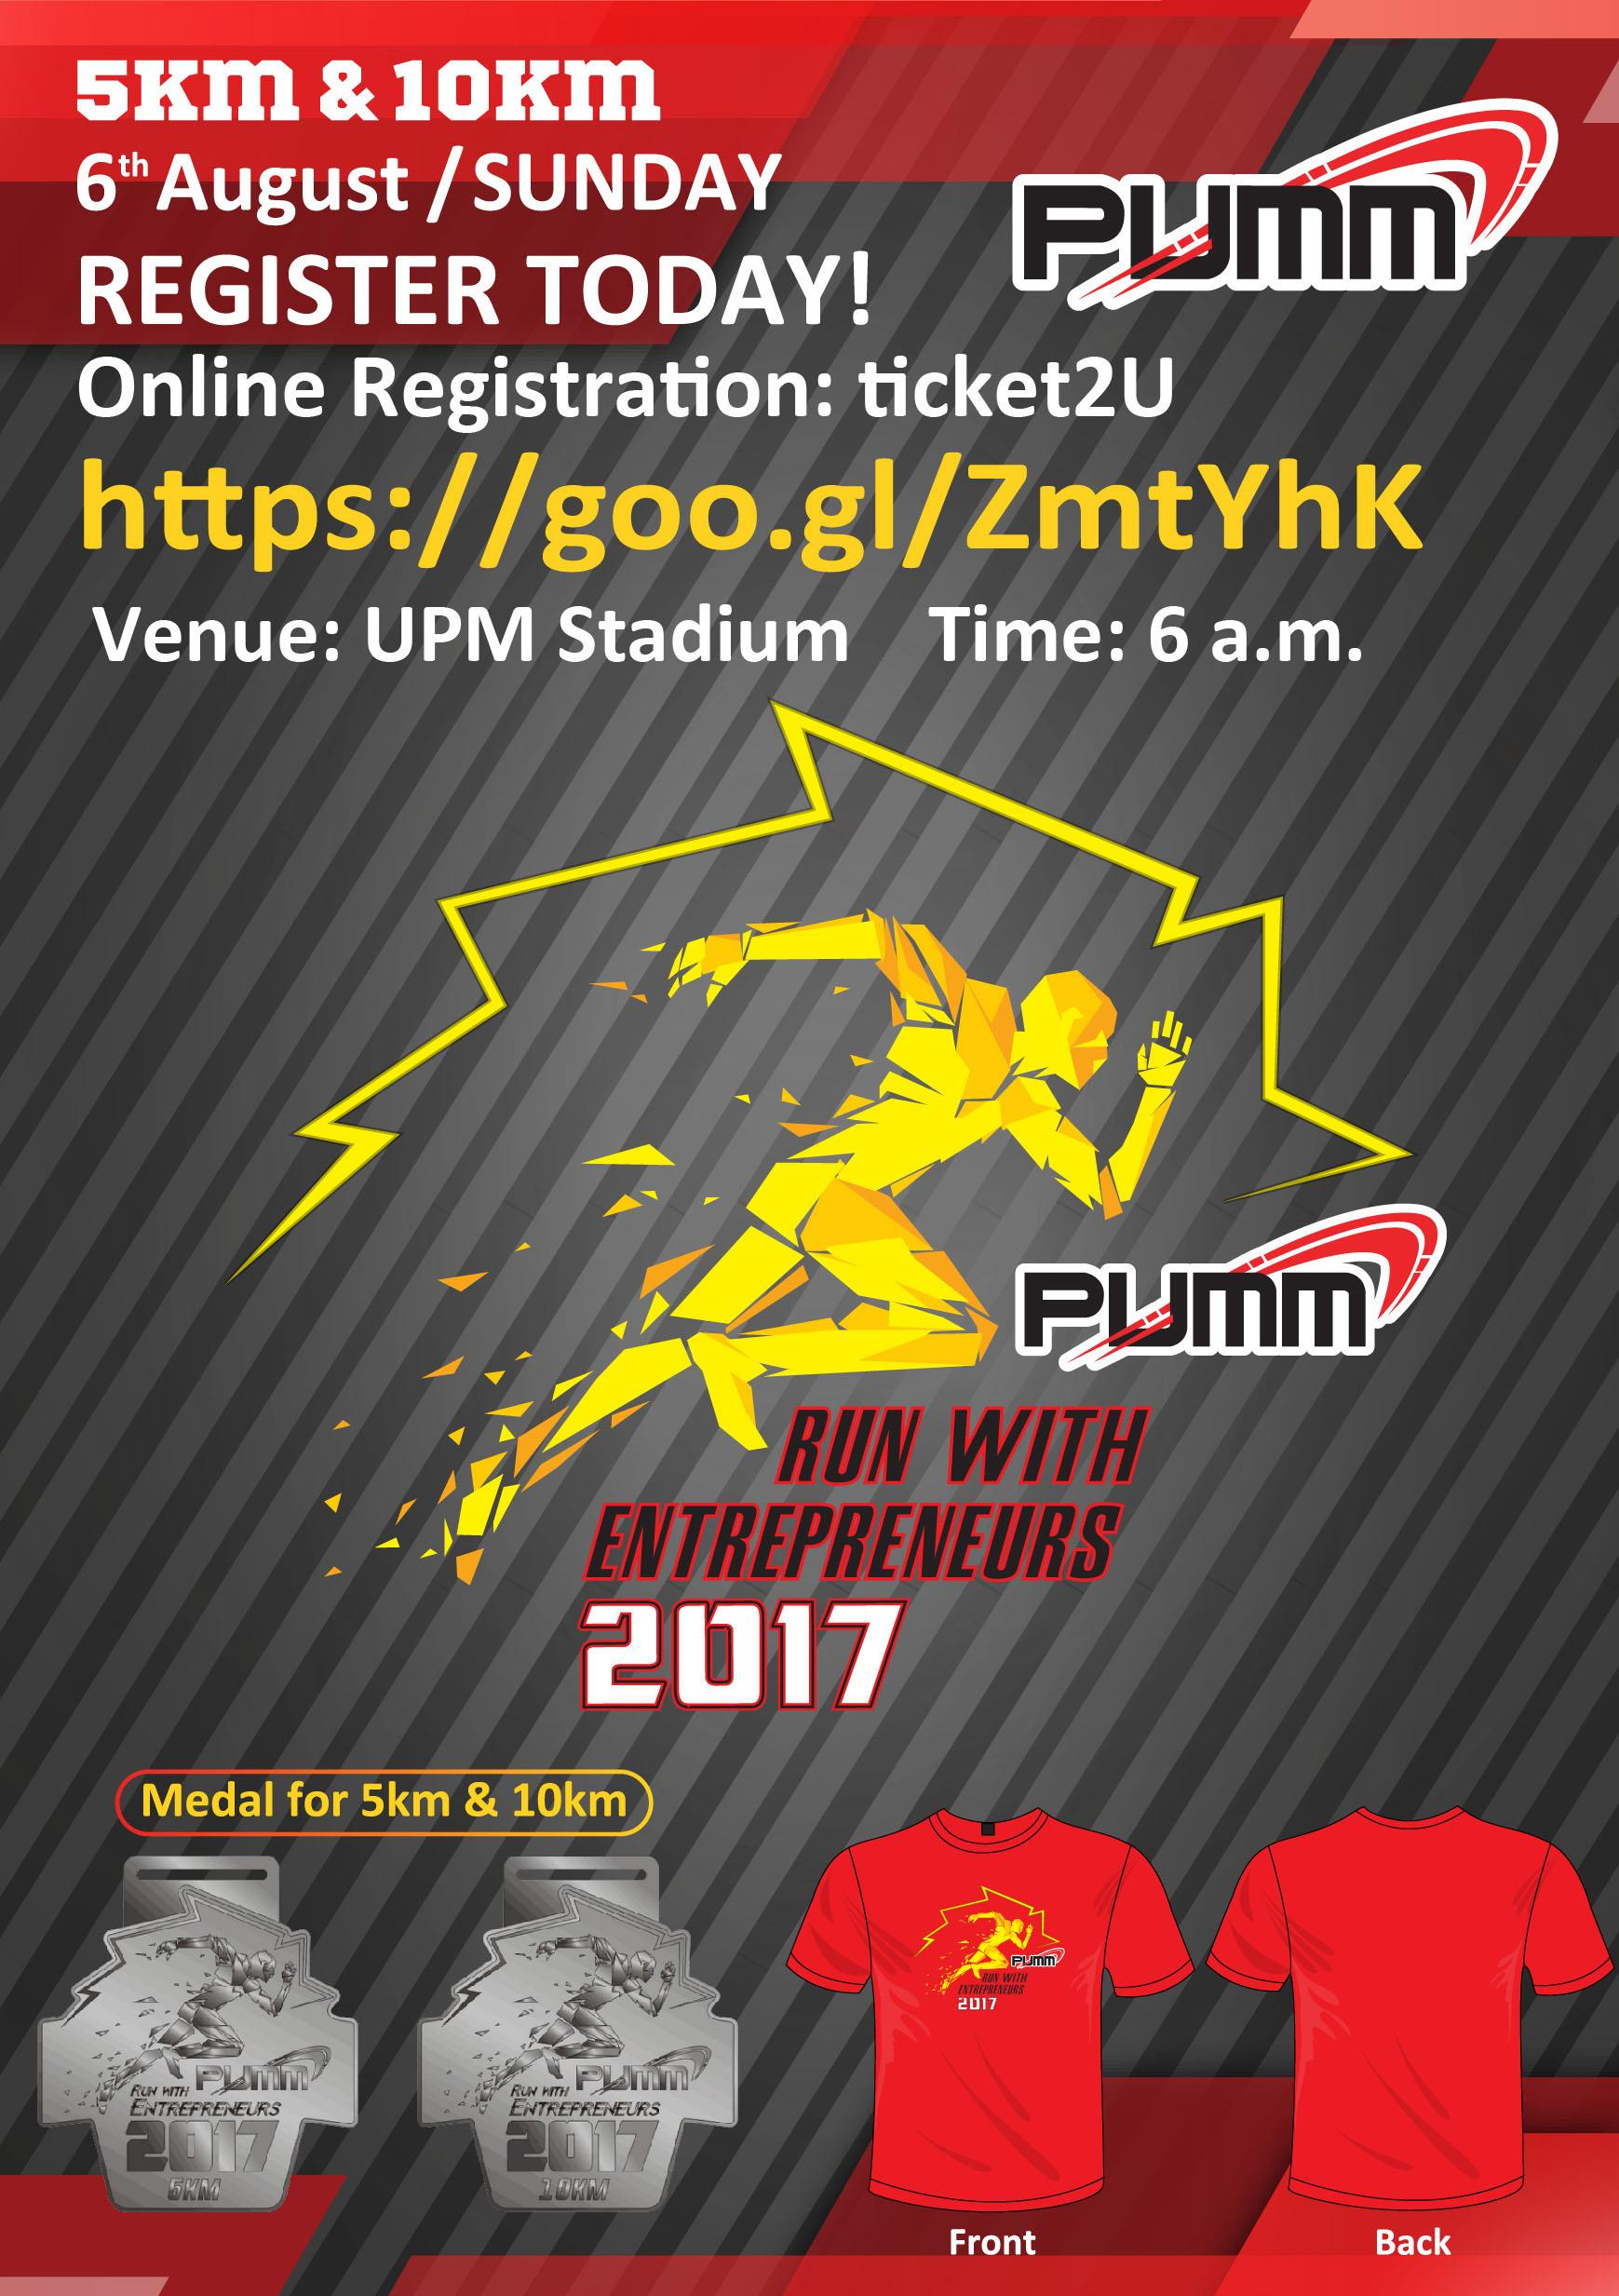 PUMM Run With Entrepreneurs 2017